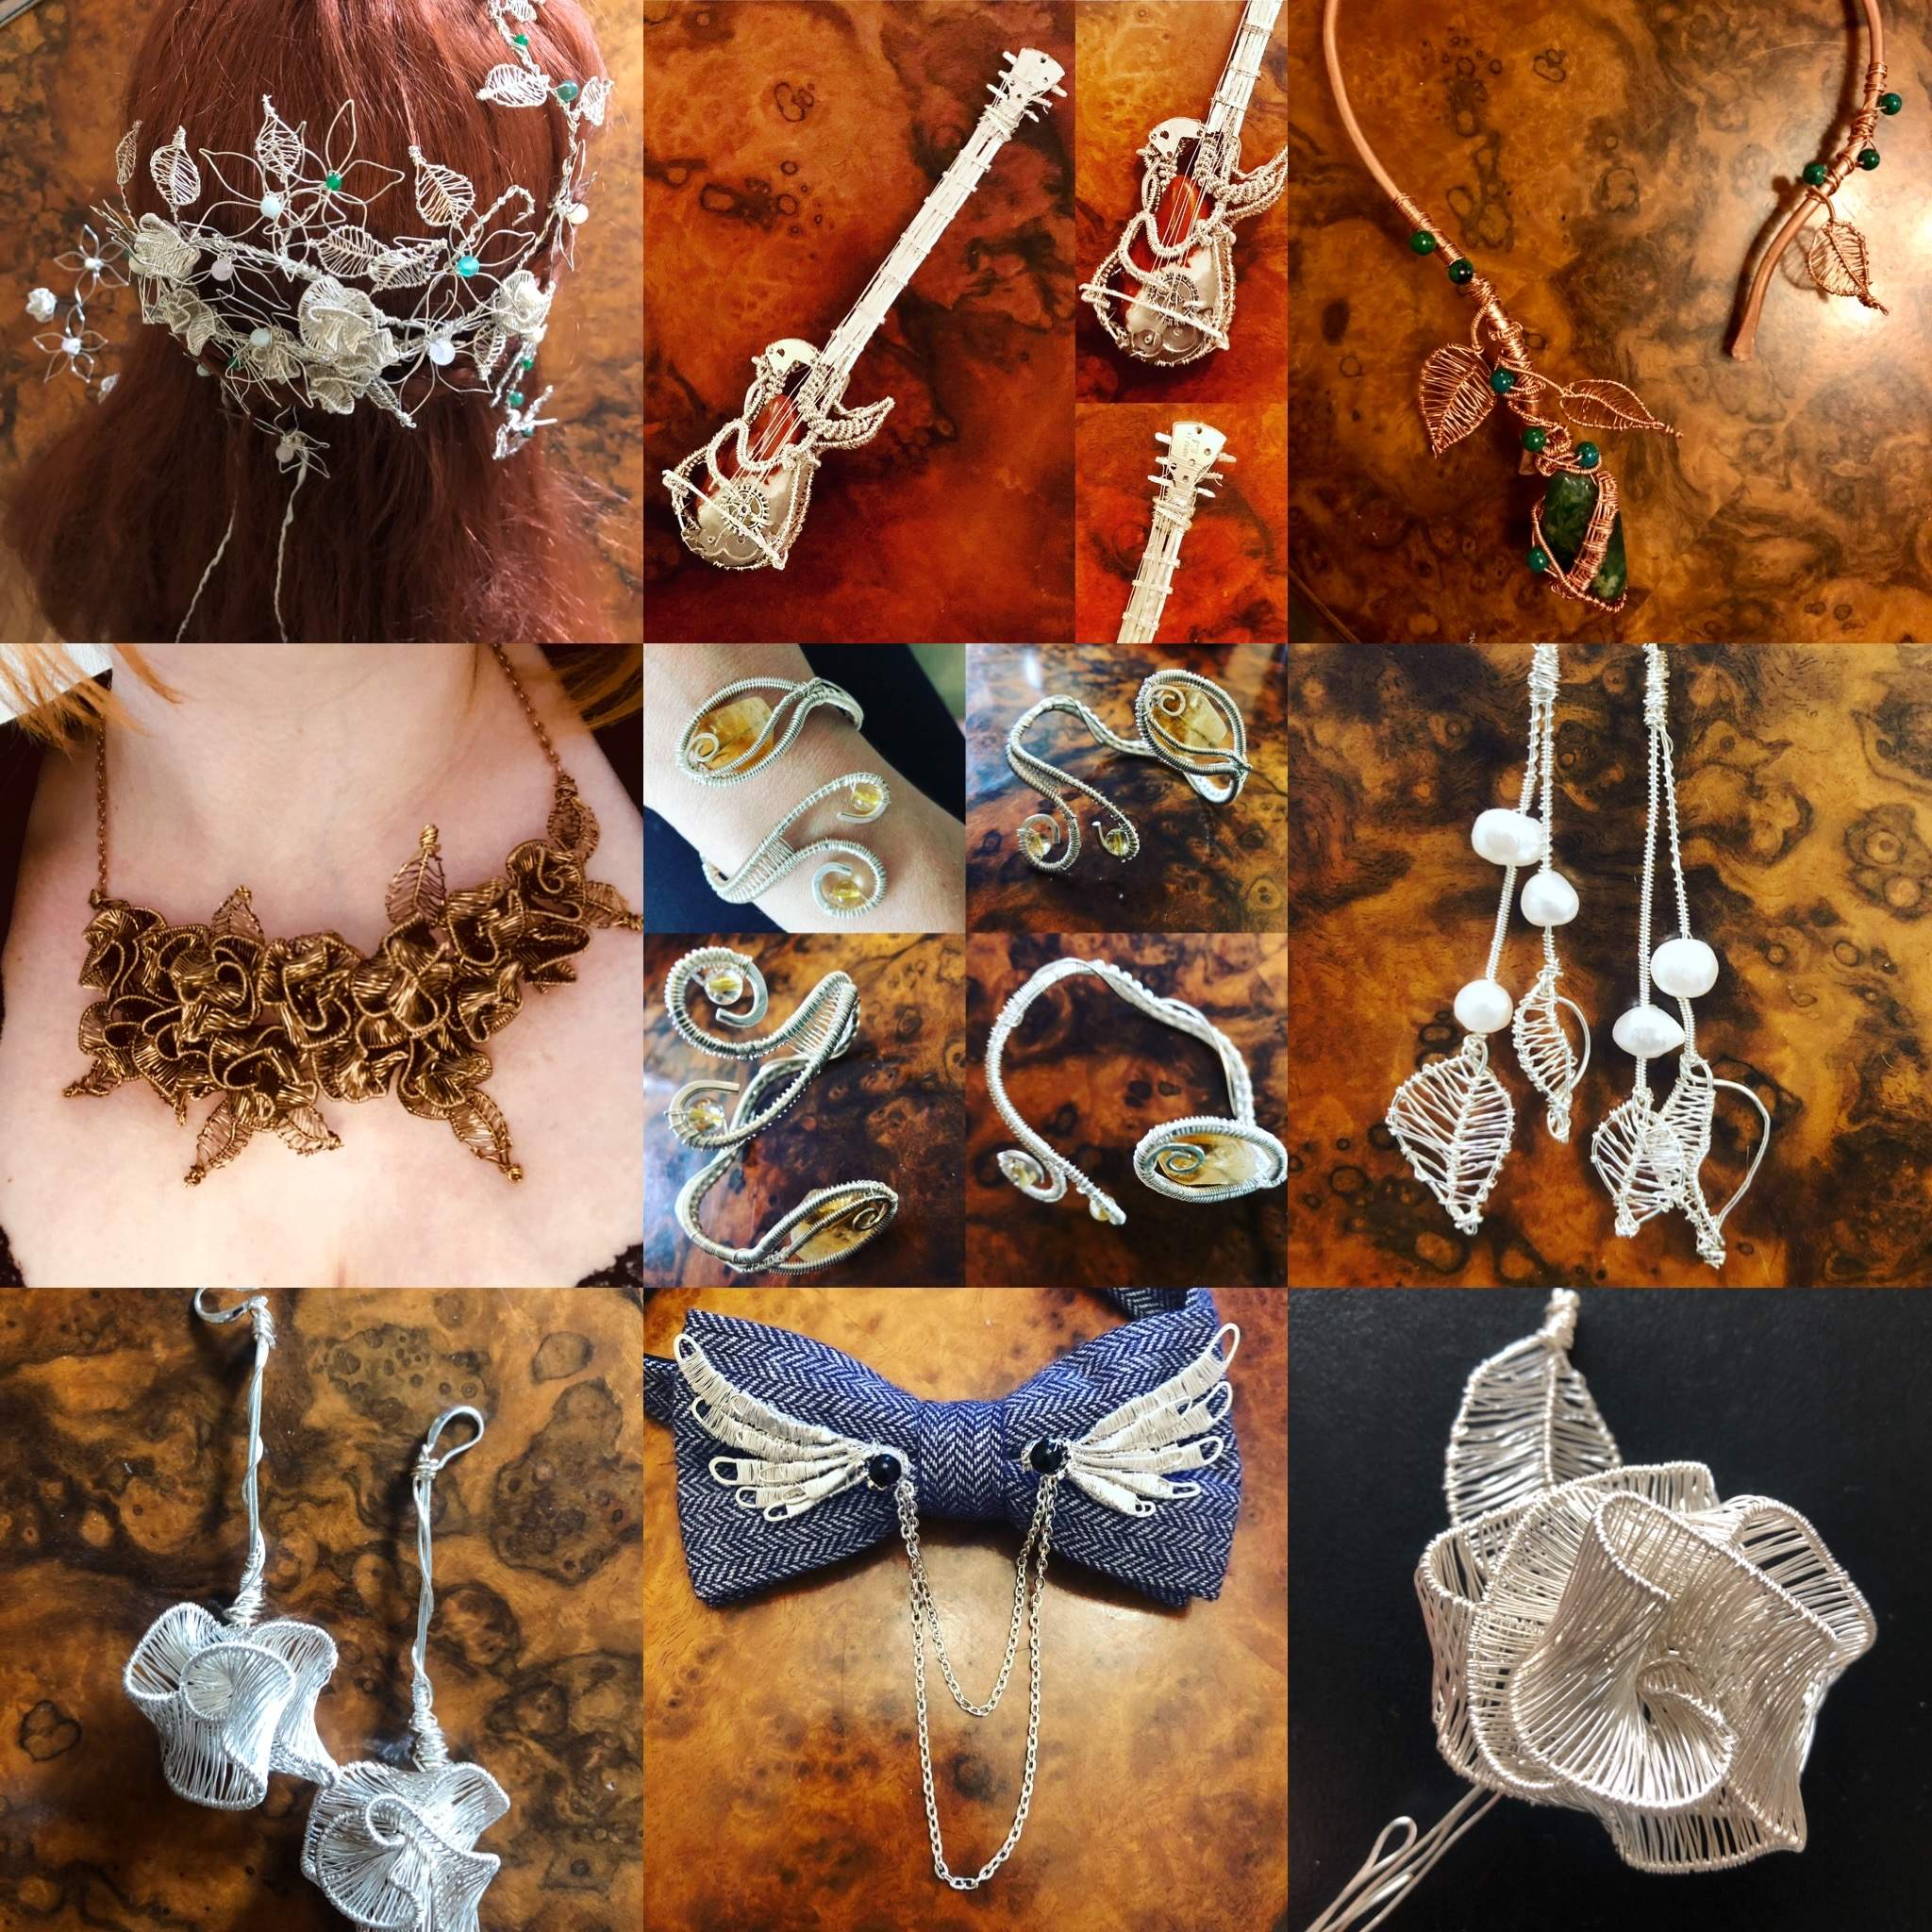 Examples of wedding jewellery and accessories